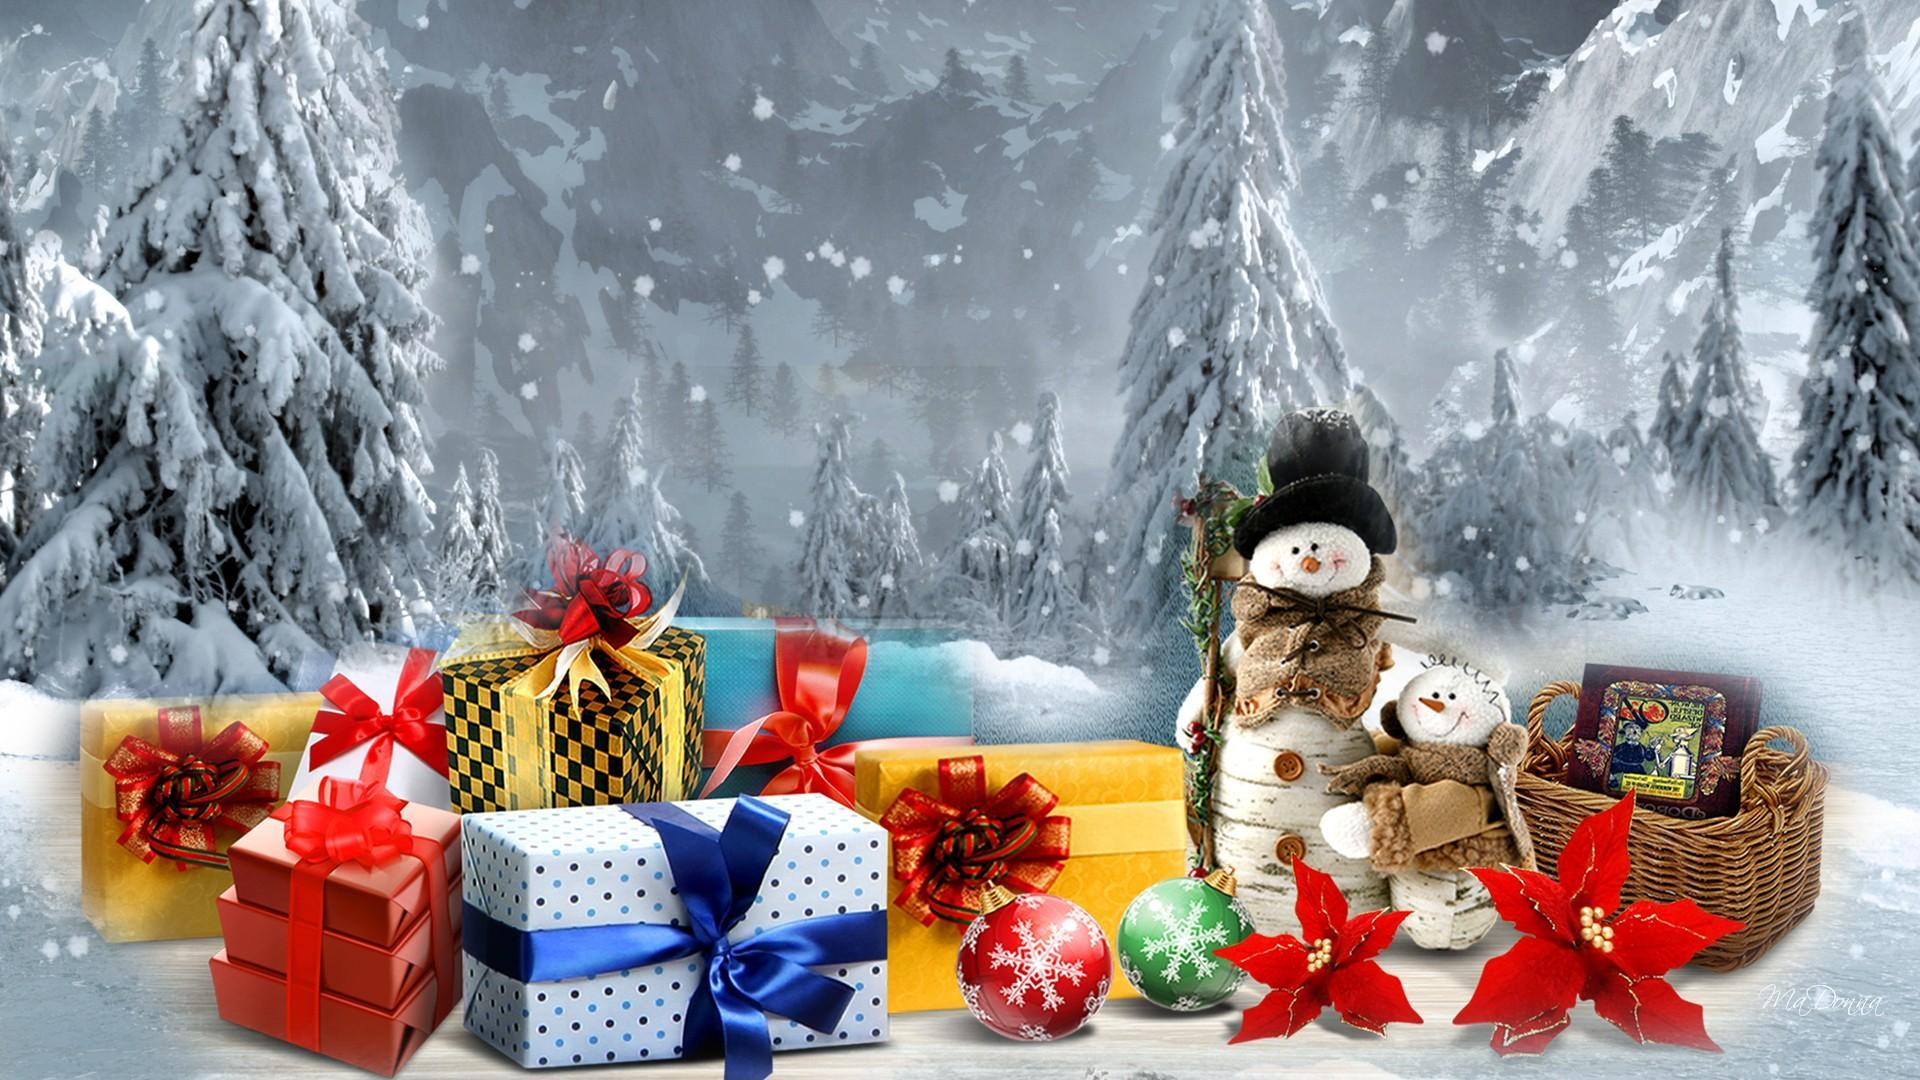 Animated Flowers Wallpapers Free Download Christmas Time Winter Time Hd Desktop Wallpaper